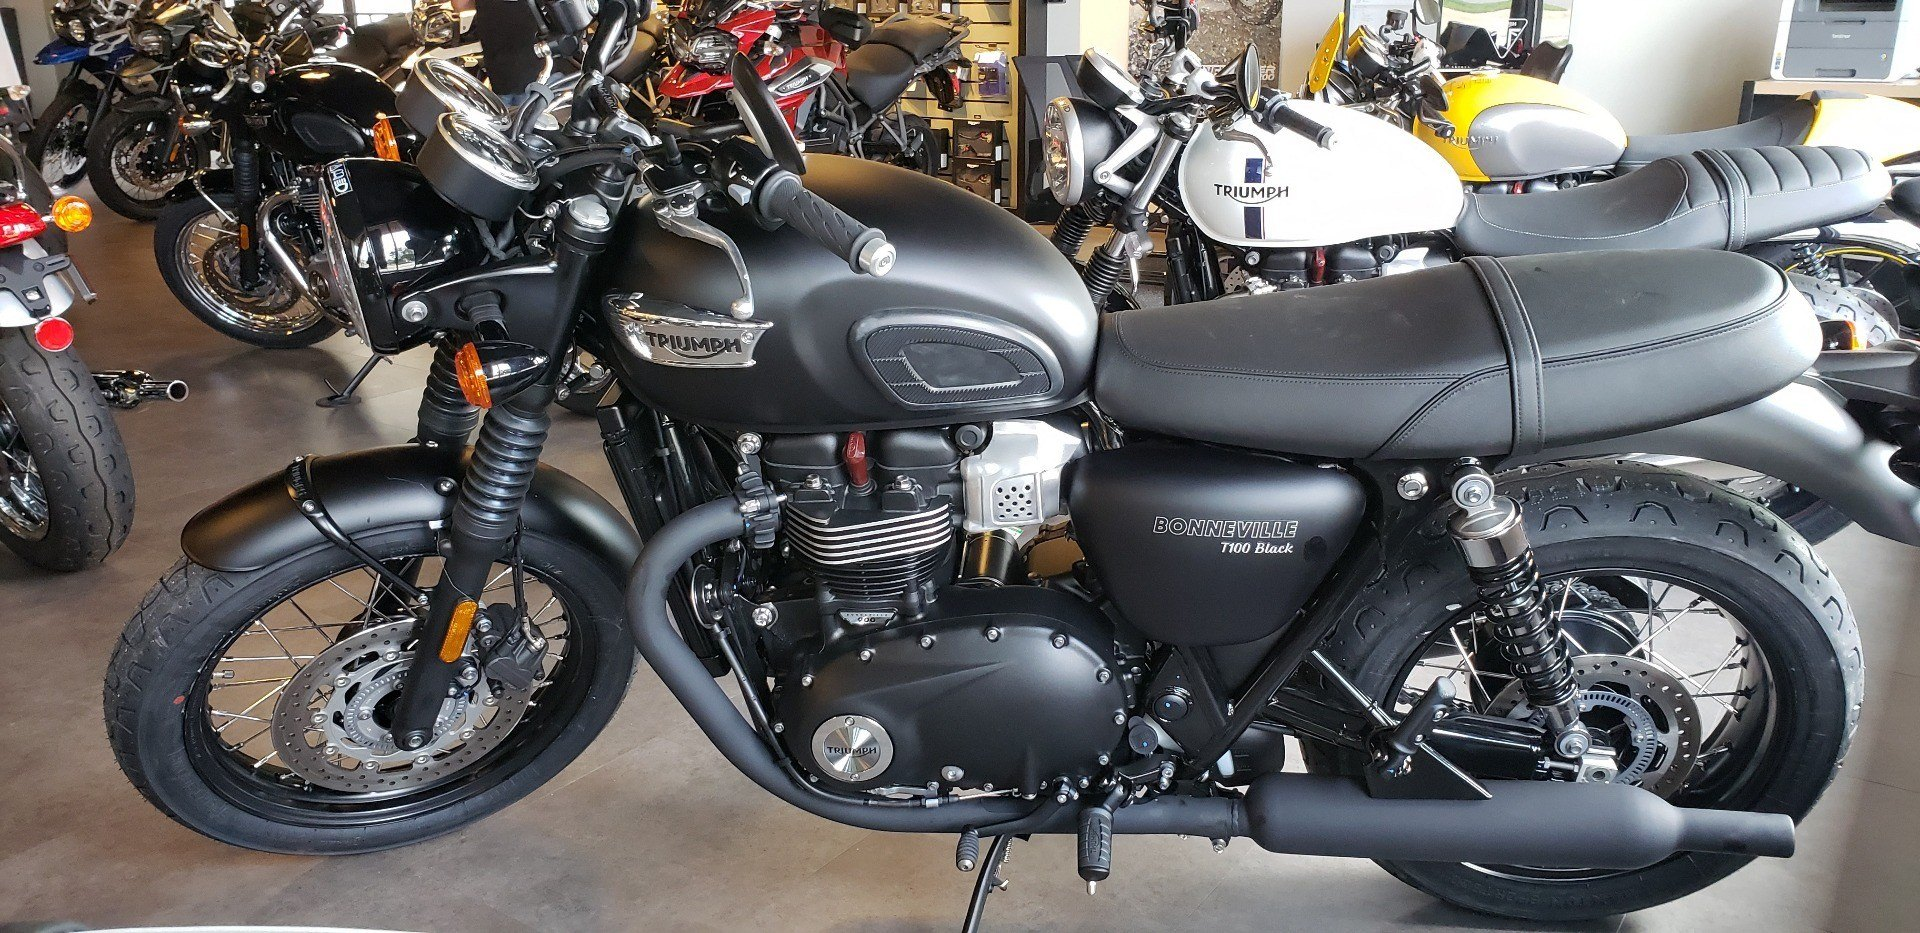 2018 Triumph Bonneville T100 Black in Shelby Township, Michigan